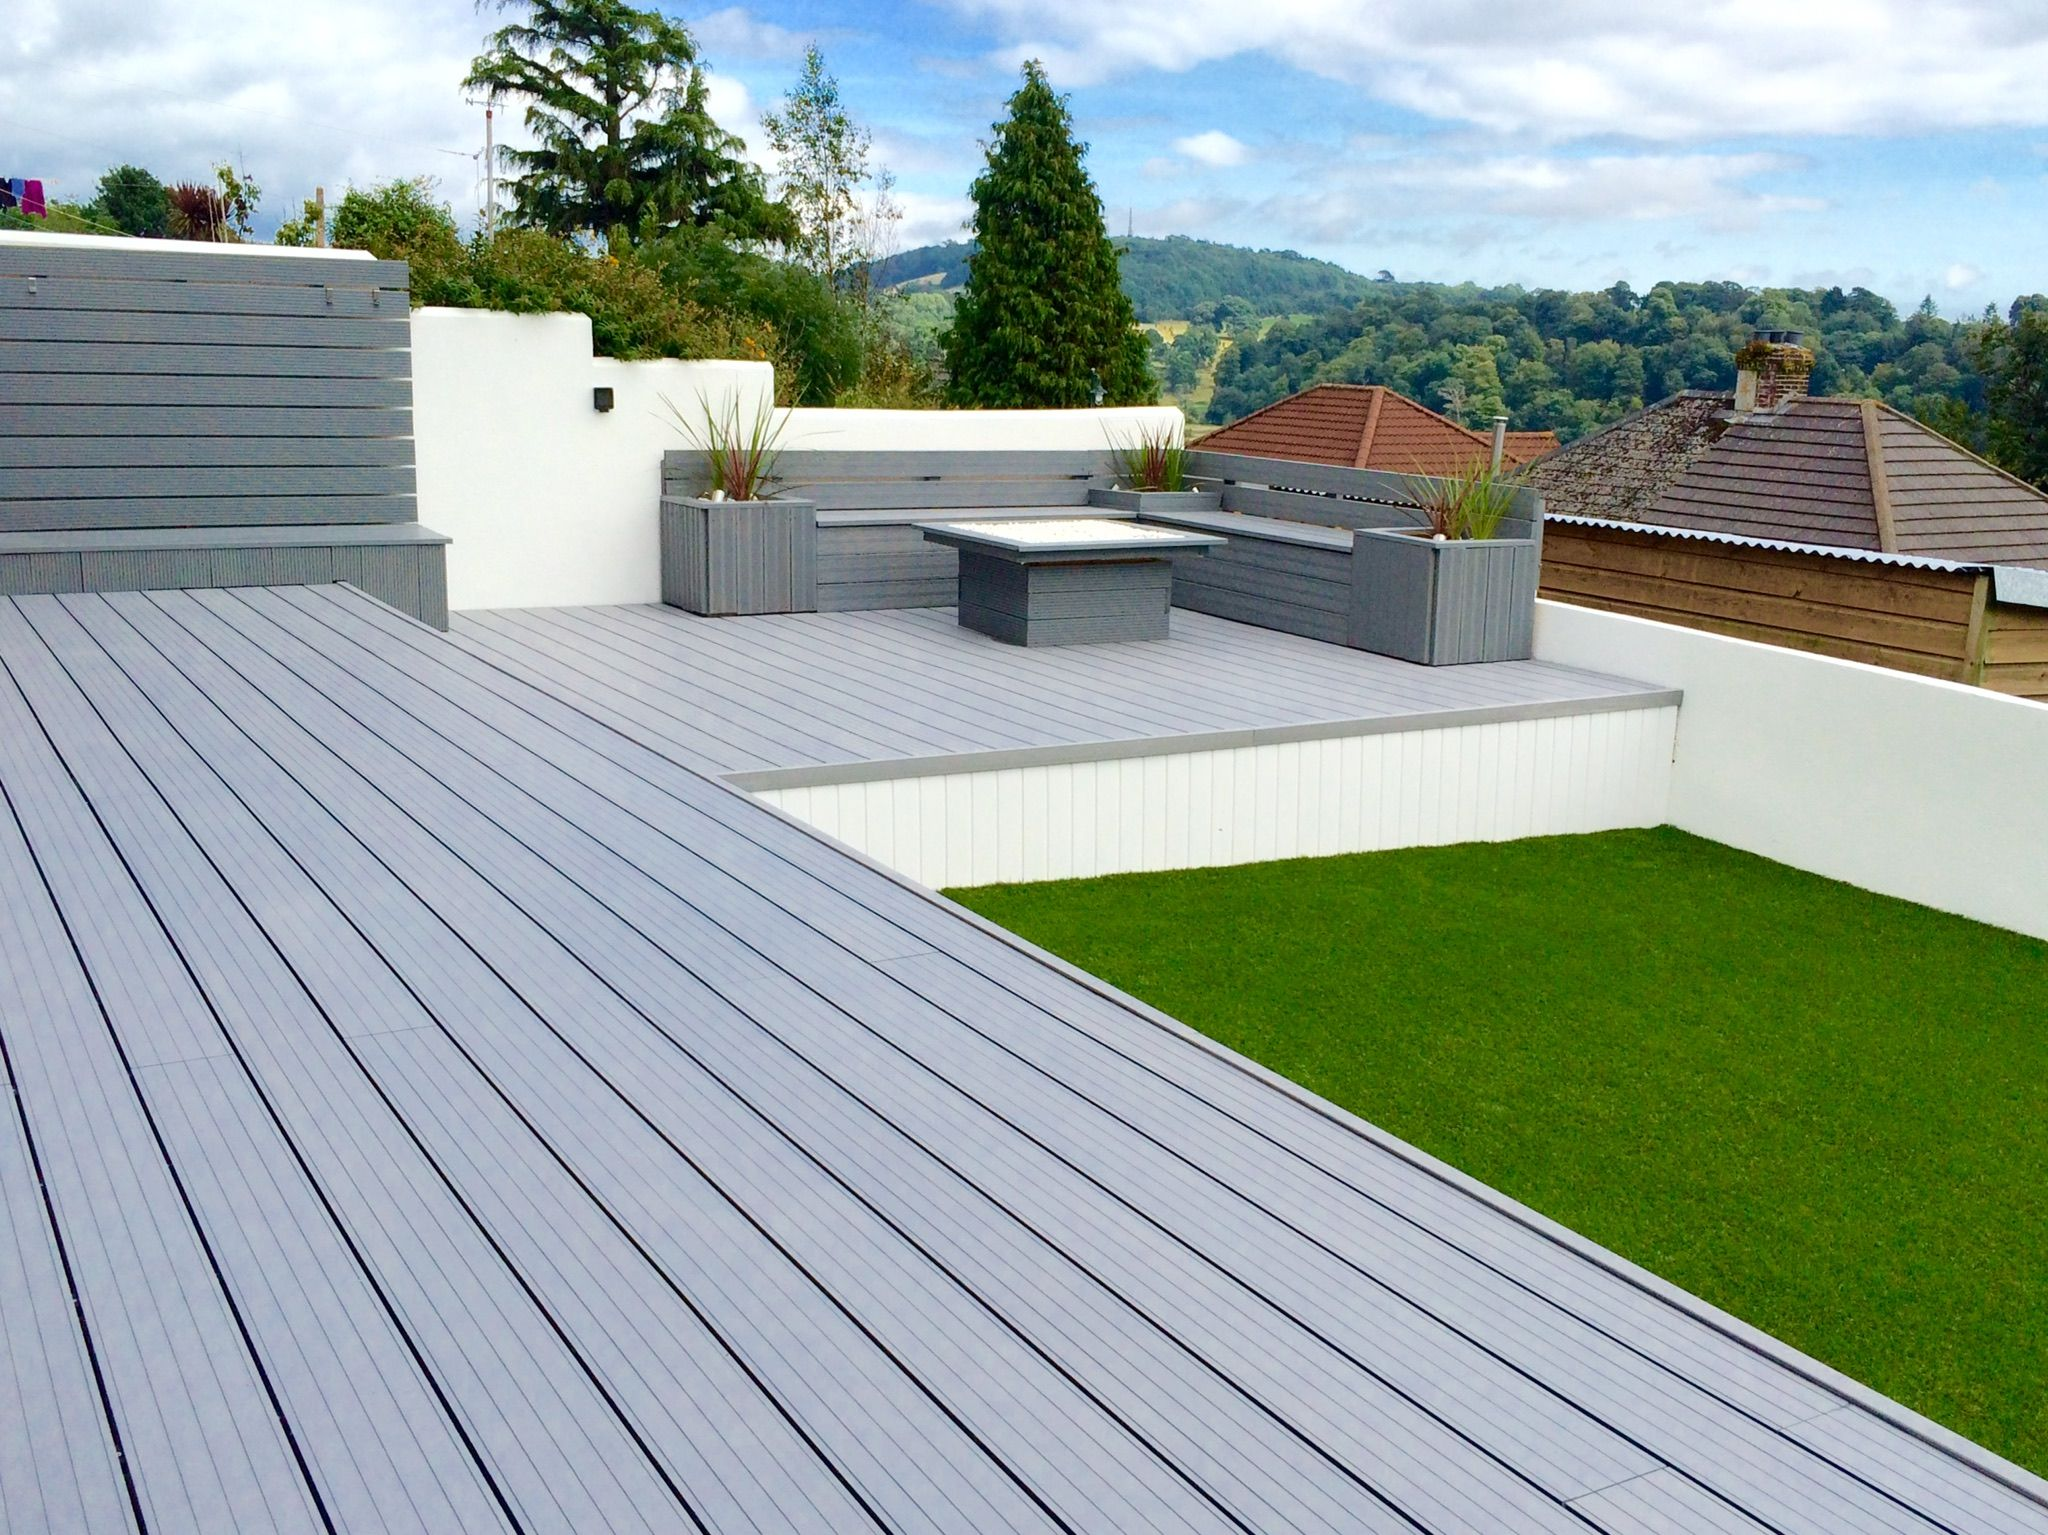 Synthetic Deck Boards Cladco Light Grey Hollow Composite Decking Boards Are Used In This